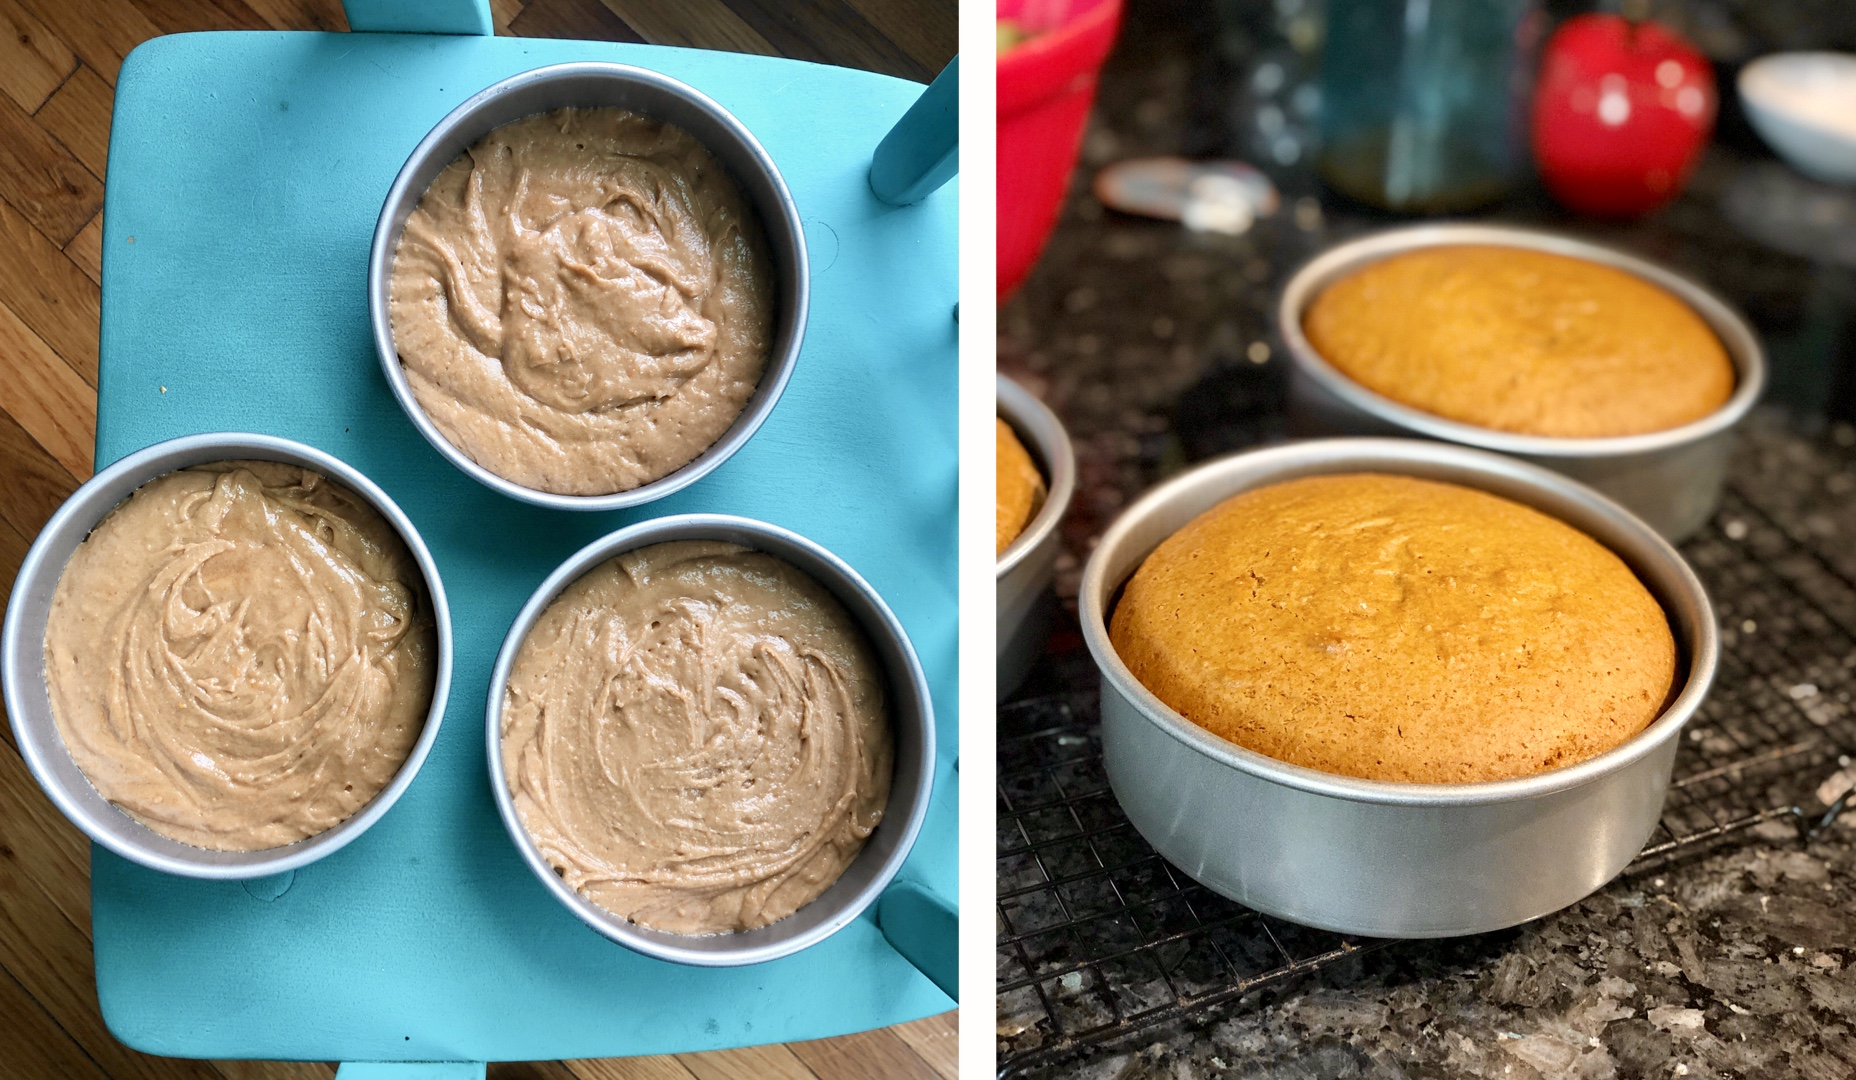 vegan loquat cake before and after baking